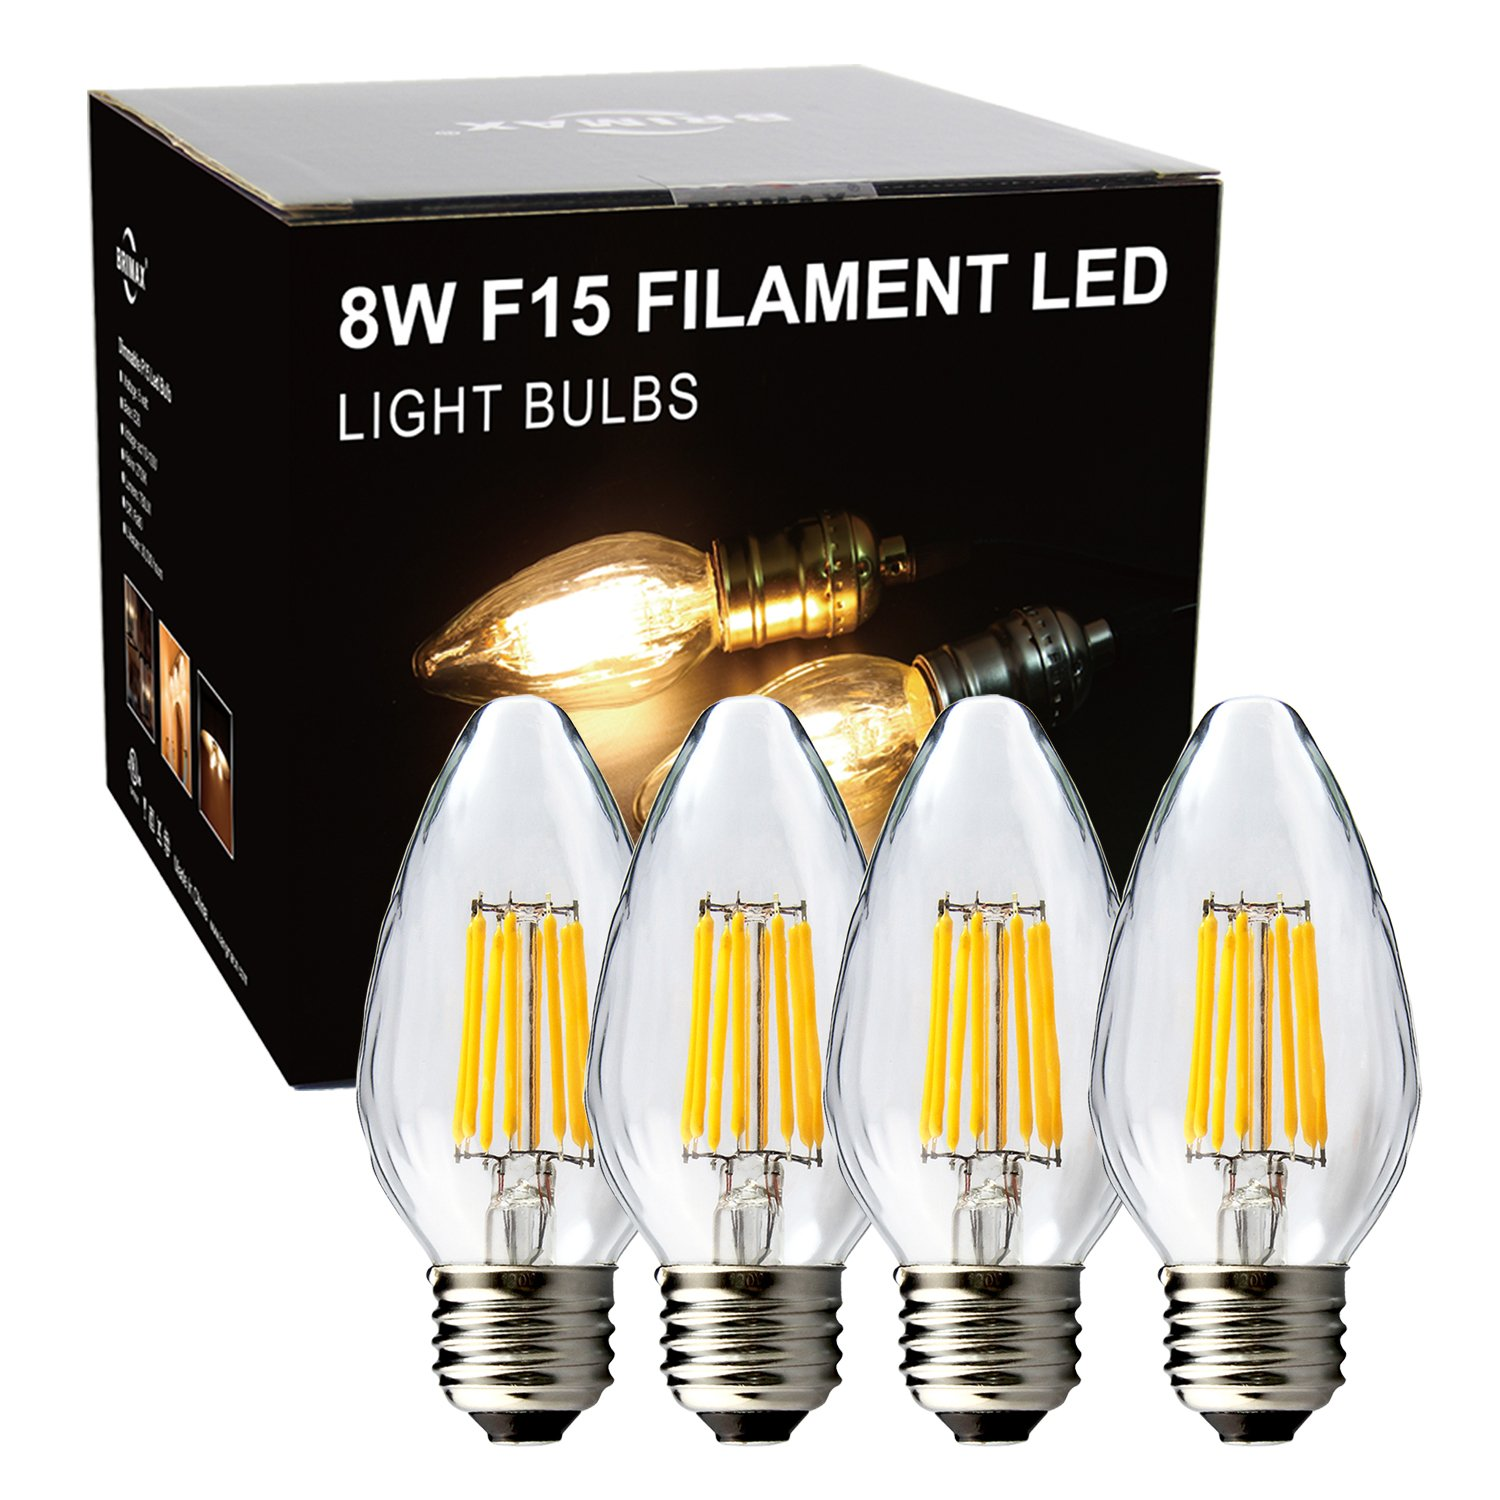 BRIMAX F15 8W Filament Led Porch Post Light Bulb Outdoor, 75W - 80W Incandescent Equivalent, E26 Medium Base Dimmable 2700K Warm White Flame Wrinkle Glass, for Ceiling Fan and Lantern Lamp, 4pack